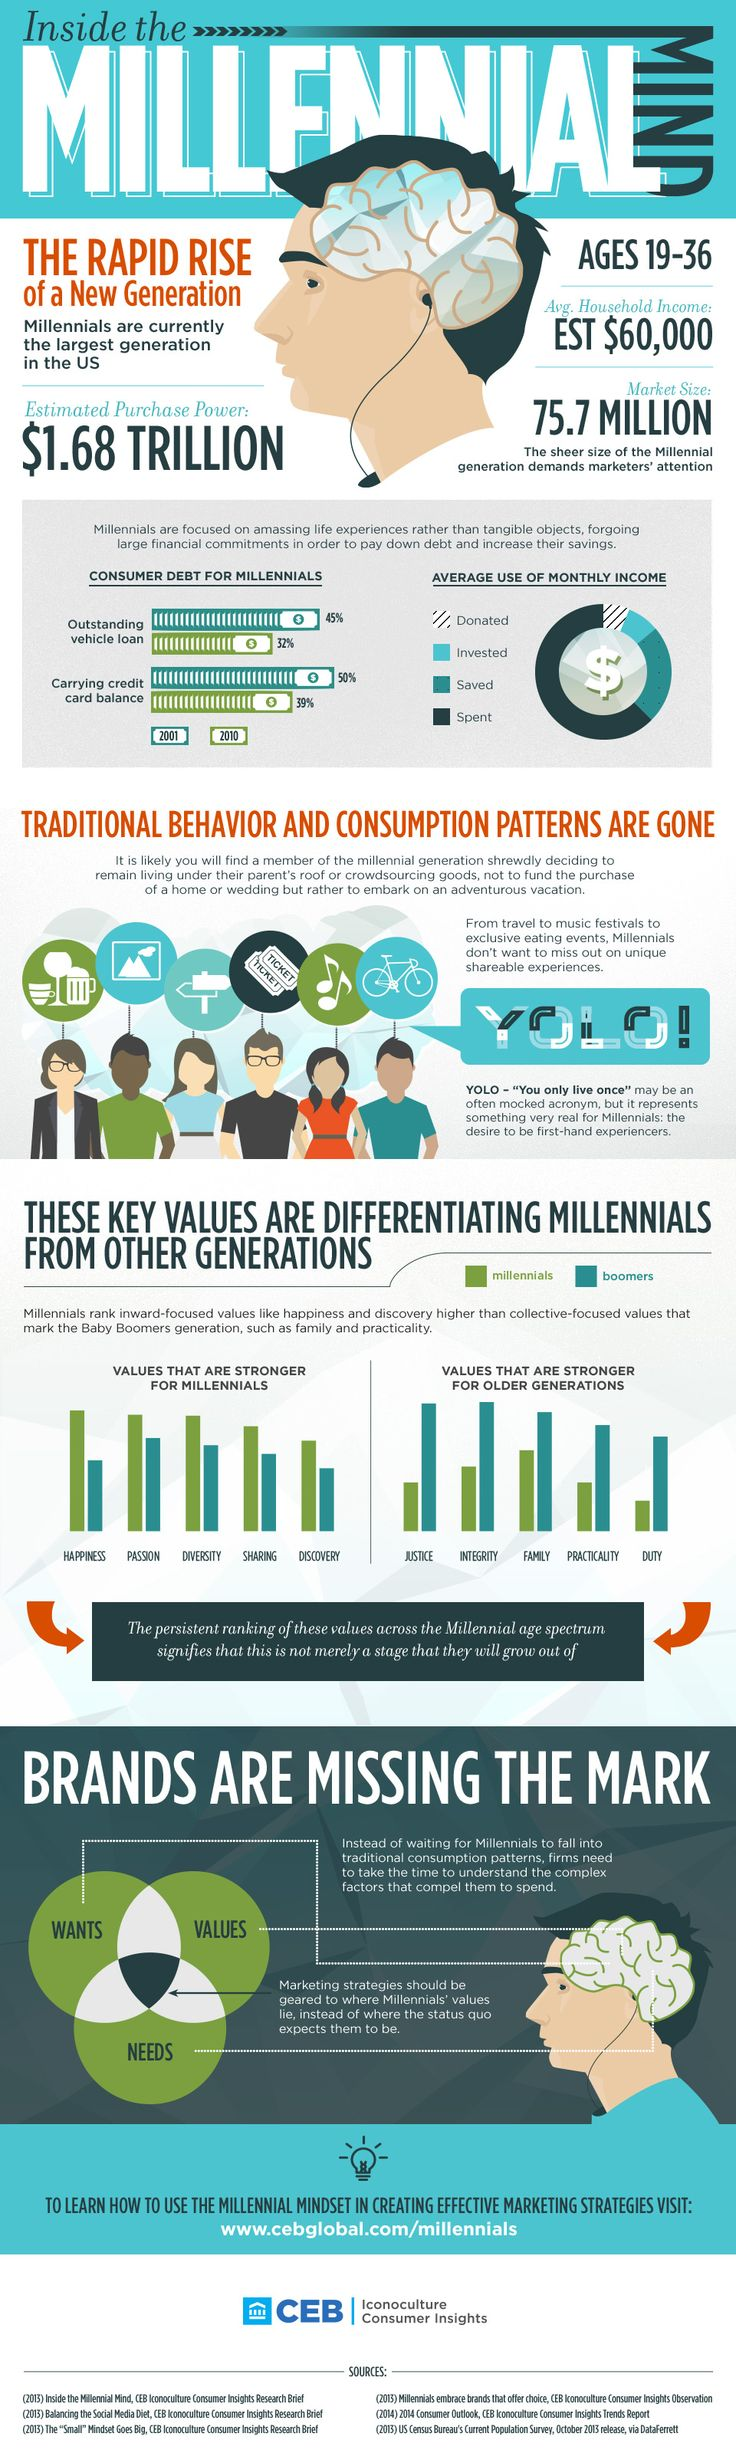 Inside the Millennial Mind: The Do's & Don'ts of Marketing to this Powerful Generation | Forbes